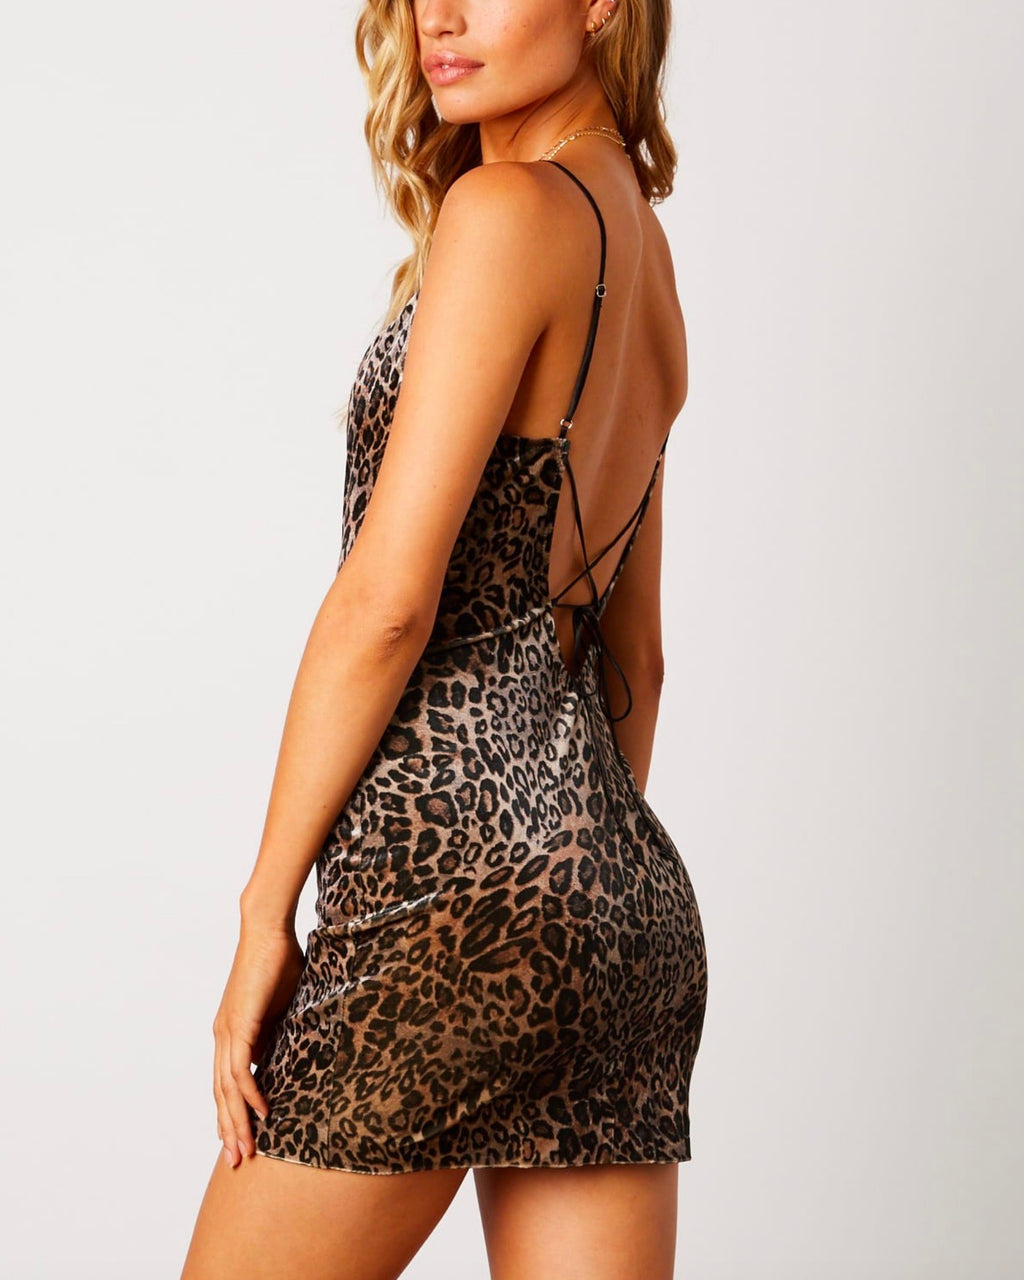 velvet mini leopard dress with strappy tie back and cowl neck - tan/leopard